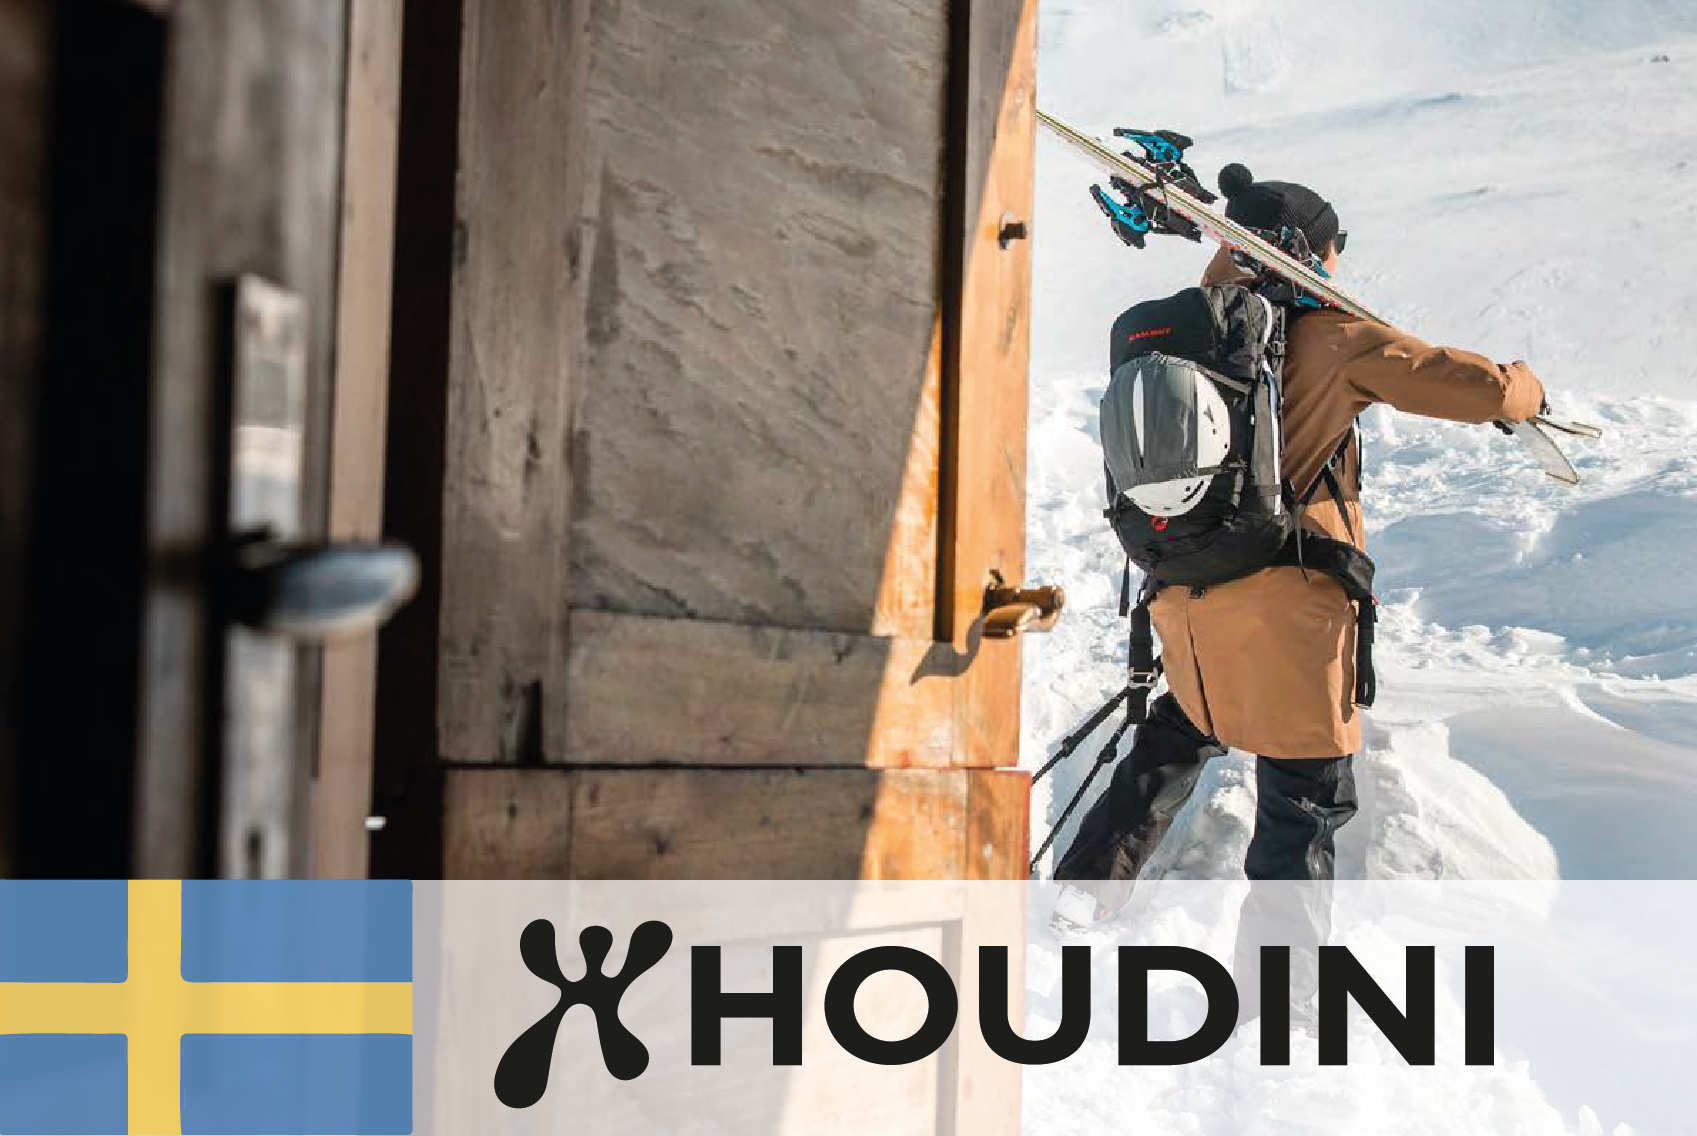 #51 Houdini Sportswear - Repair, recycling and access-over-ownership - CIRCit Nord